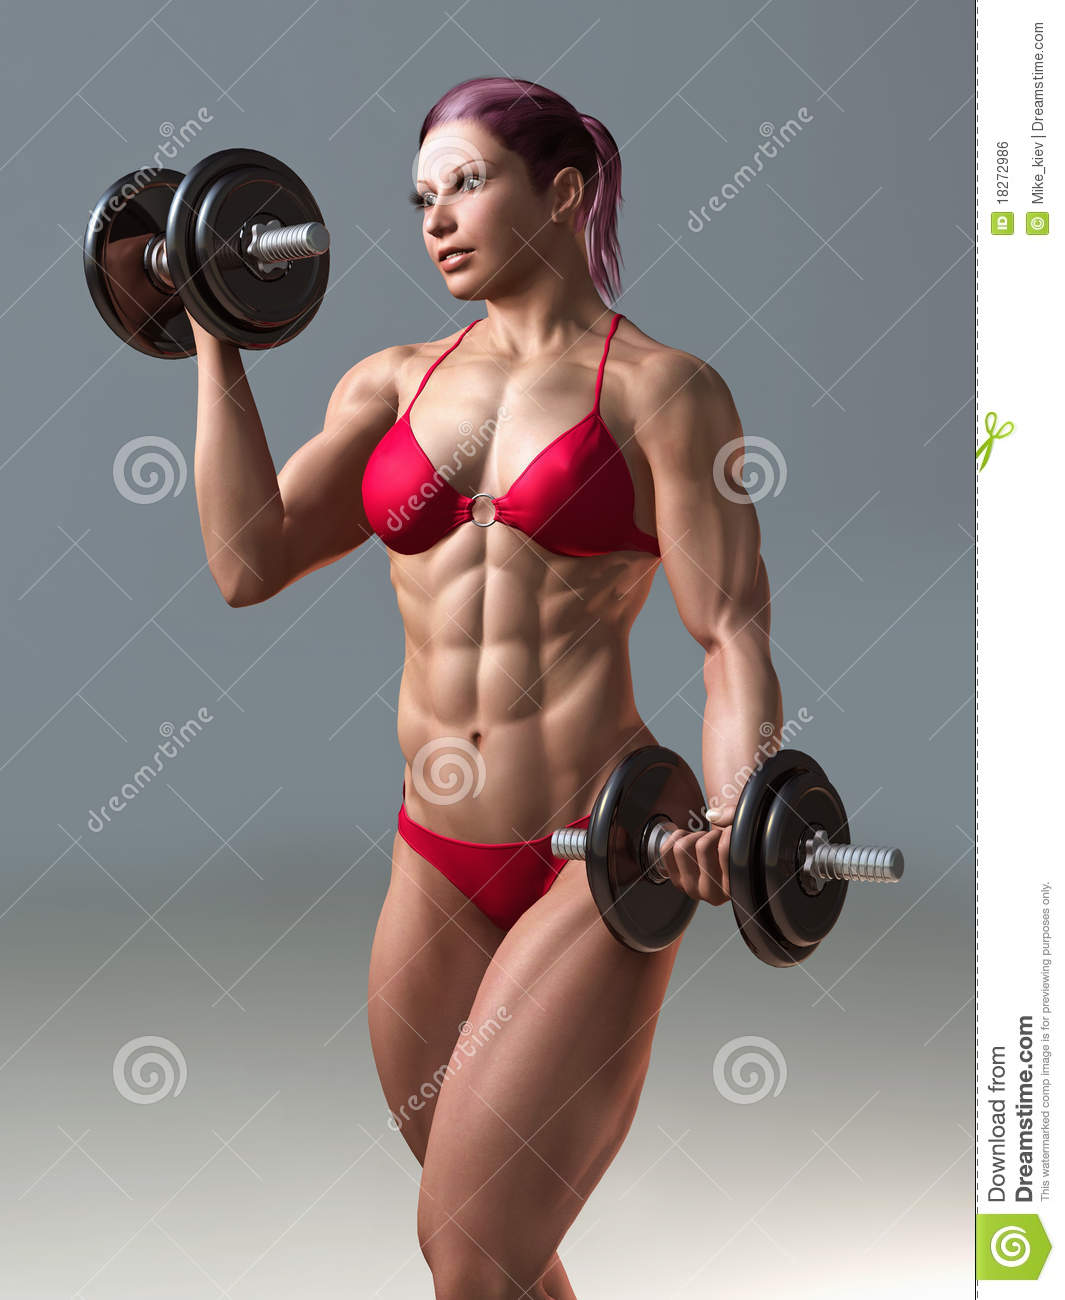 Body building woman stock photo. Image of building, female